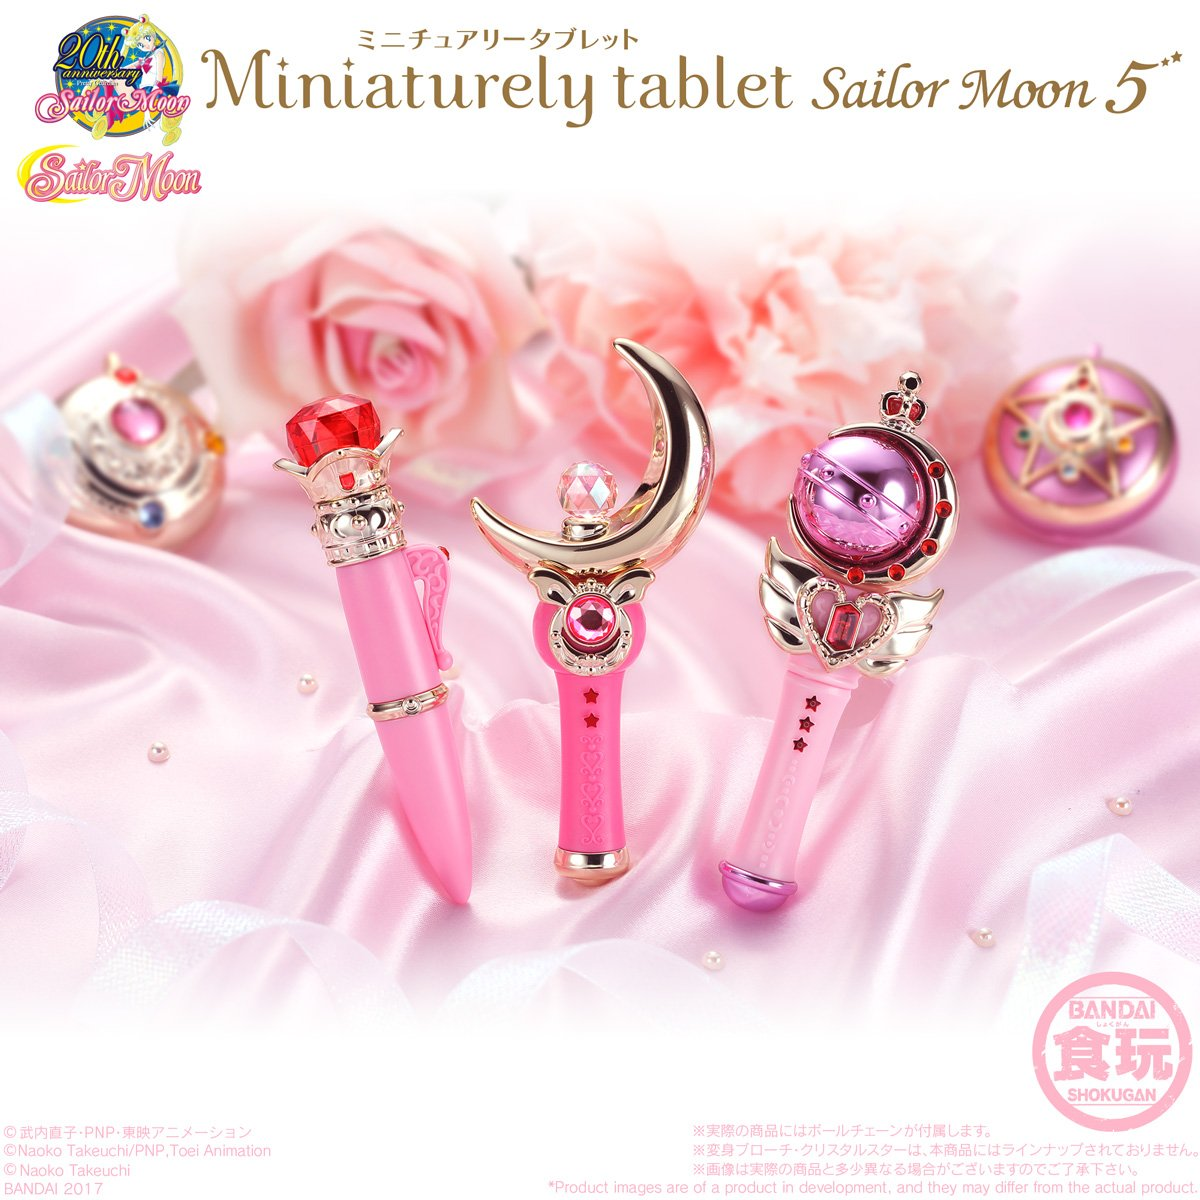 """sailor moon"" ""sailor moon toys"" ""sailor moon merchandise"" ""sailor moon wands"" ""sailor moon candy toy"" ""sailor moon collectibles"" ""miniaturely tablet"" ""candy toy"" ""moon stick"" ""cutie moon rod"" ""disguise pen"" ""luna pen"" shop anime japan bandai 2017"